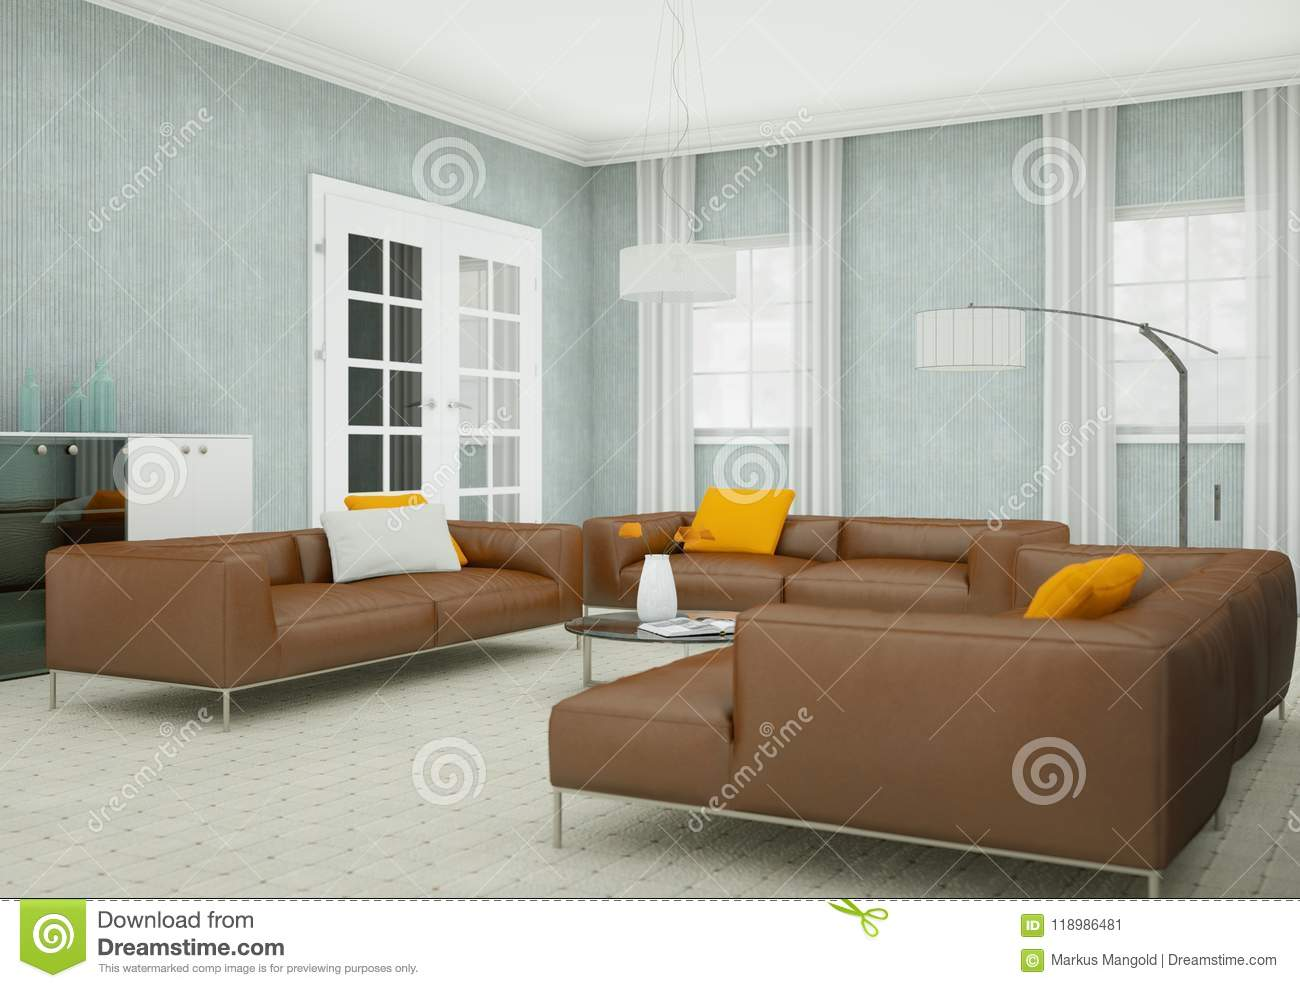 Modern Living Room Interior Design With Brown Leather Sofas ...